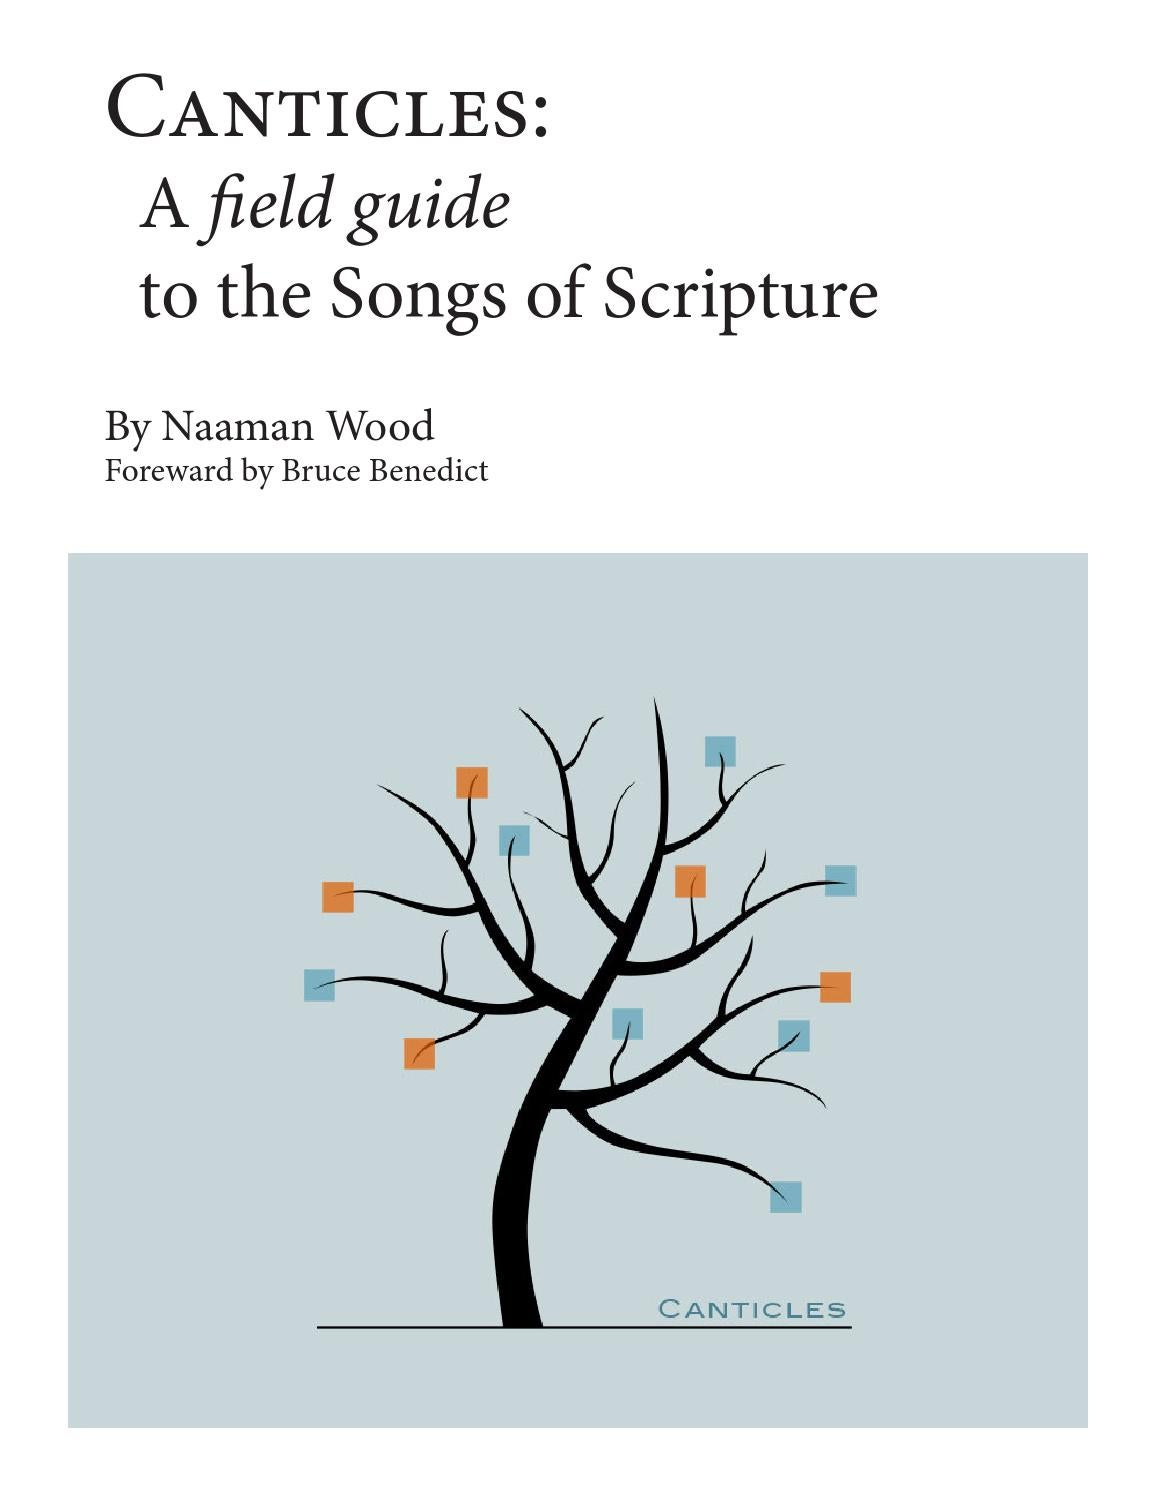 Canticles Primer: A Field Guide to the Songs of Scripture by